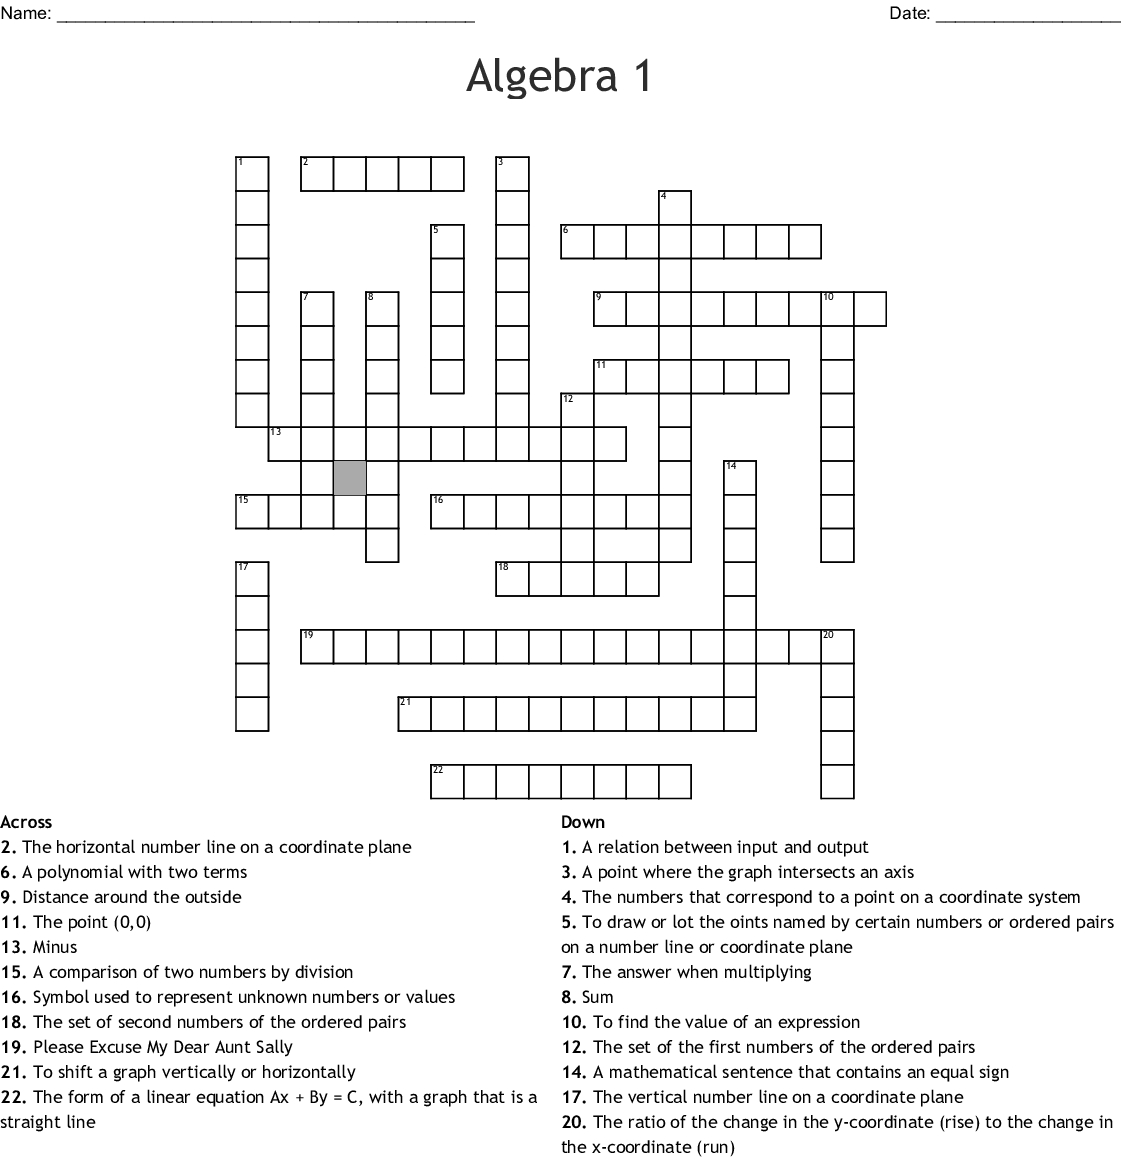 Algebra 1 Crossword - Wordmint - Free Printable Crossword Puzzle #1 Answers